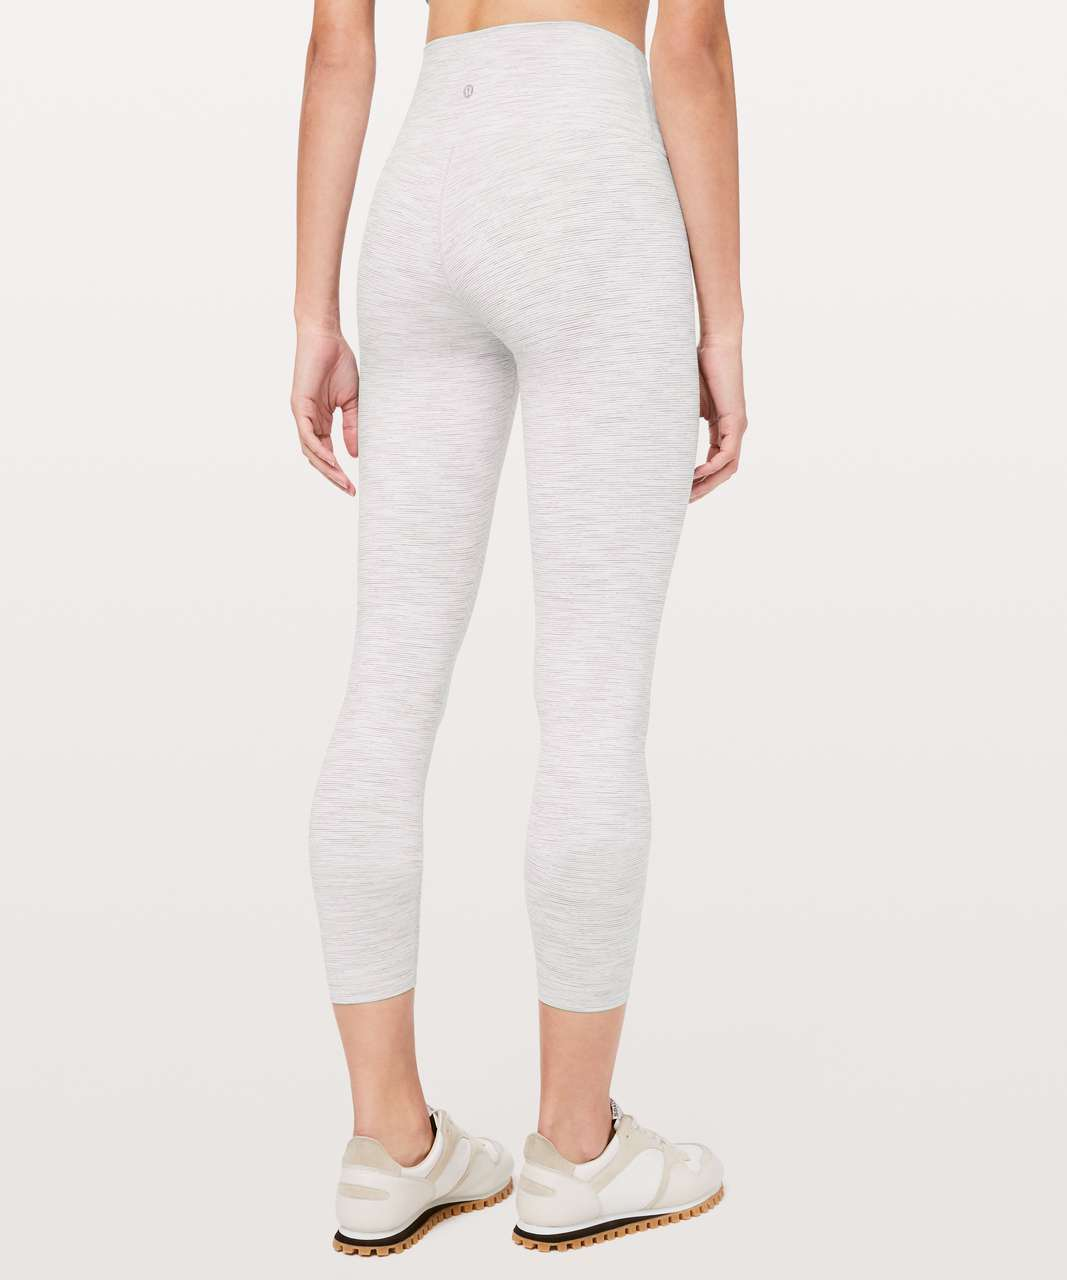 "Lululemon Wunder Under High-Rise 7/8 Tight *Luxtreme 25"" - Wee Are From Space Nimbus Battleship"